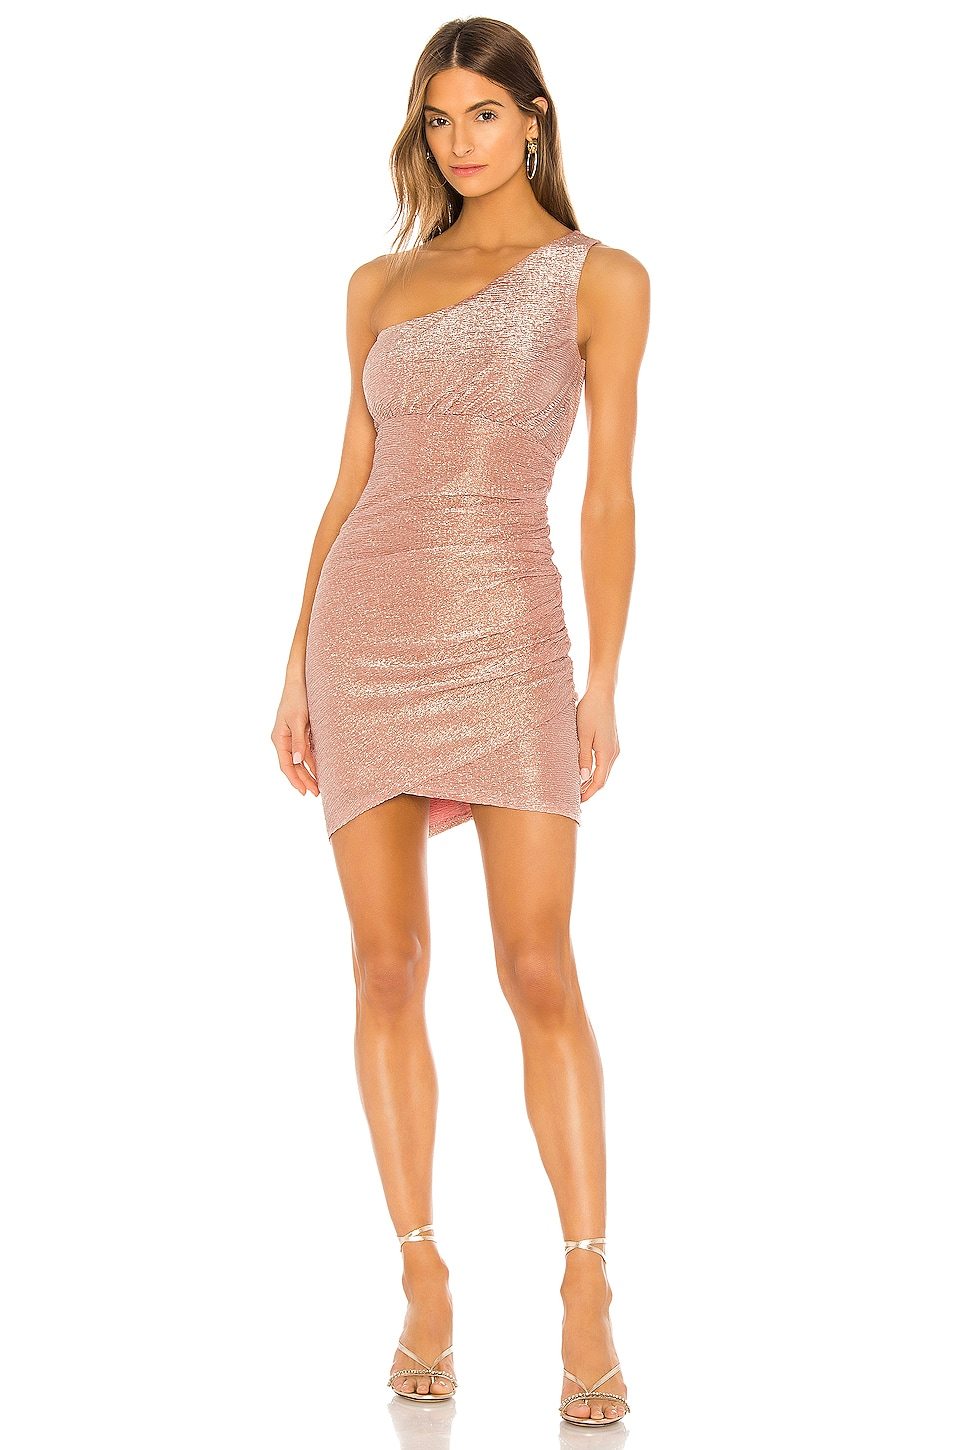 NBD Amora Mini Dress in Rose Gold